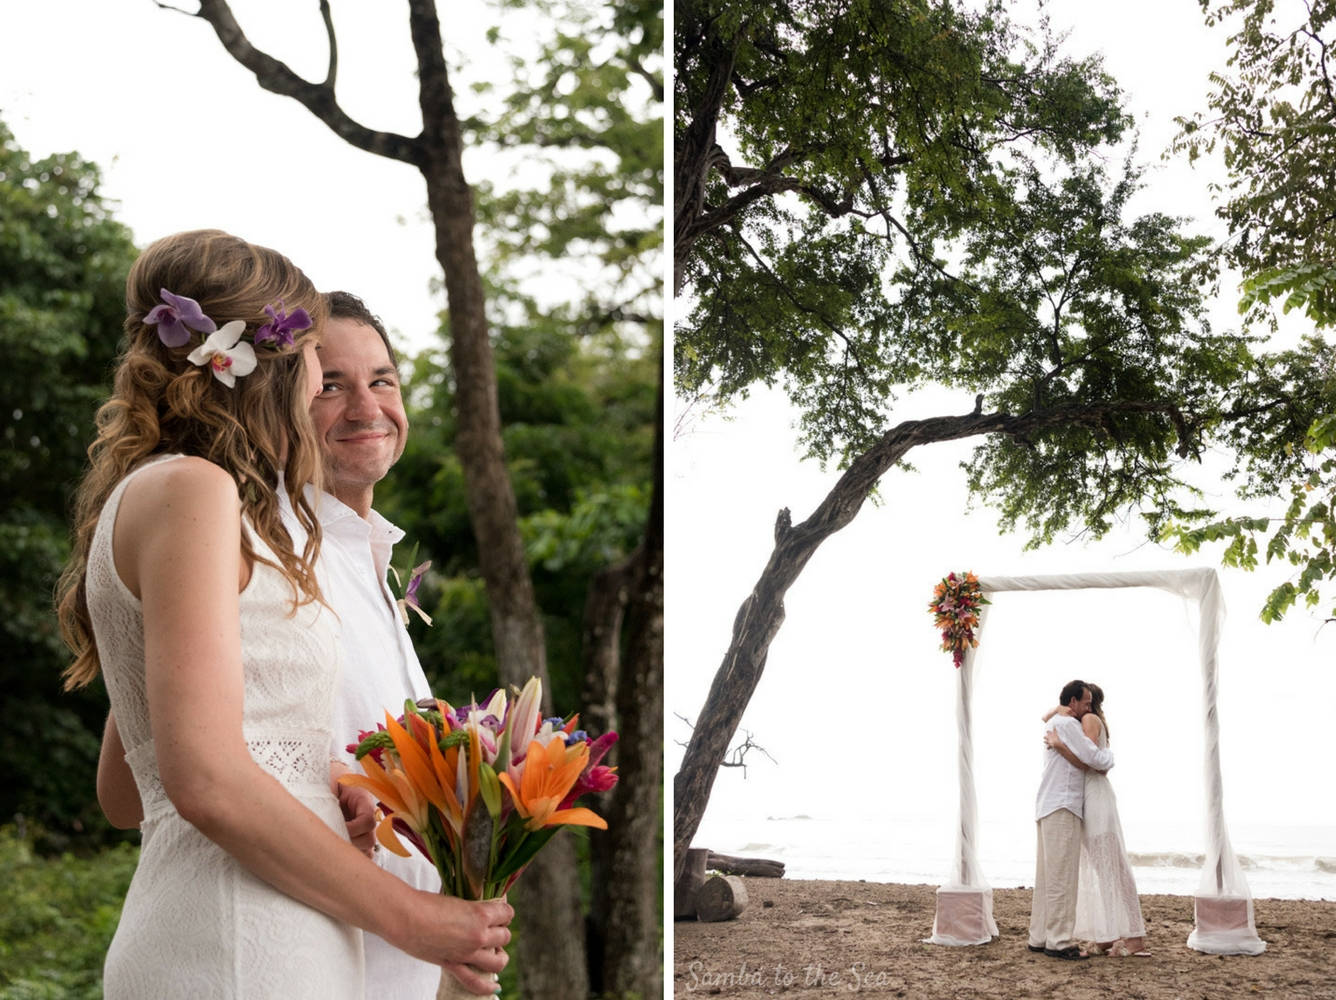 Langosta Beach Club elopement in Tamarindo, Costa Rica. Photographed by Kristen M. Brown, Samba to the Sea Photography.